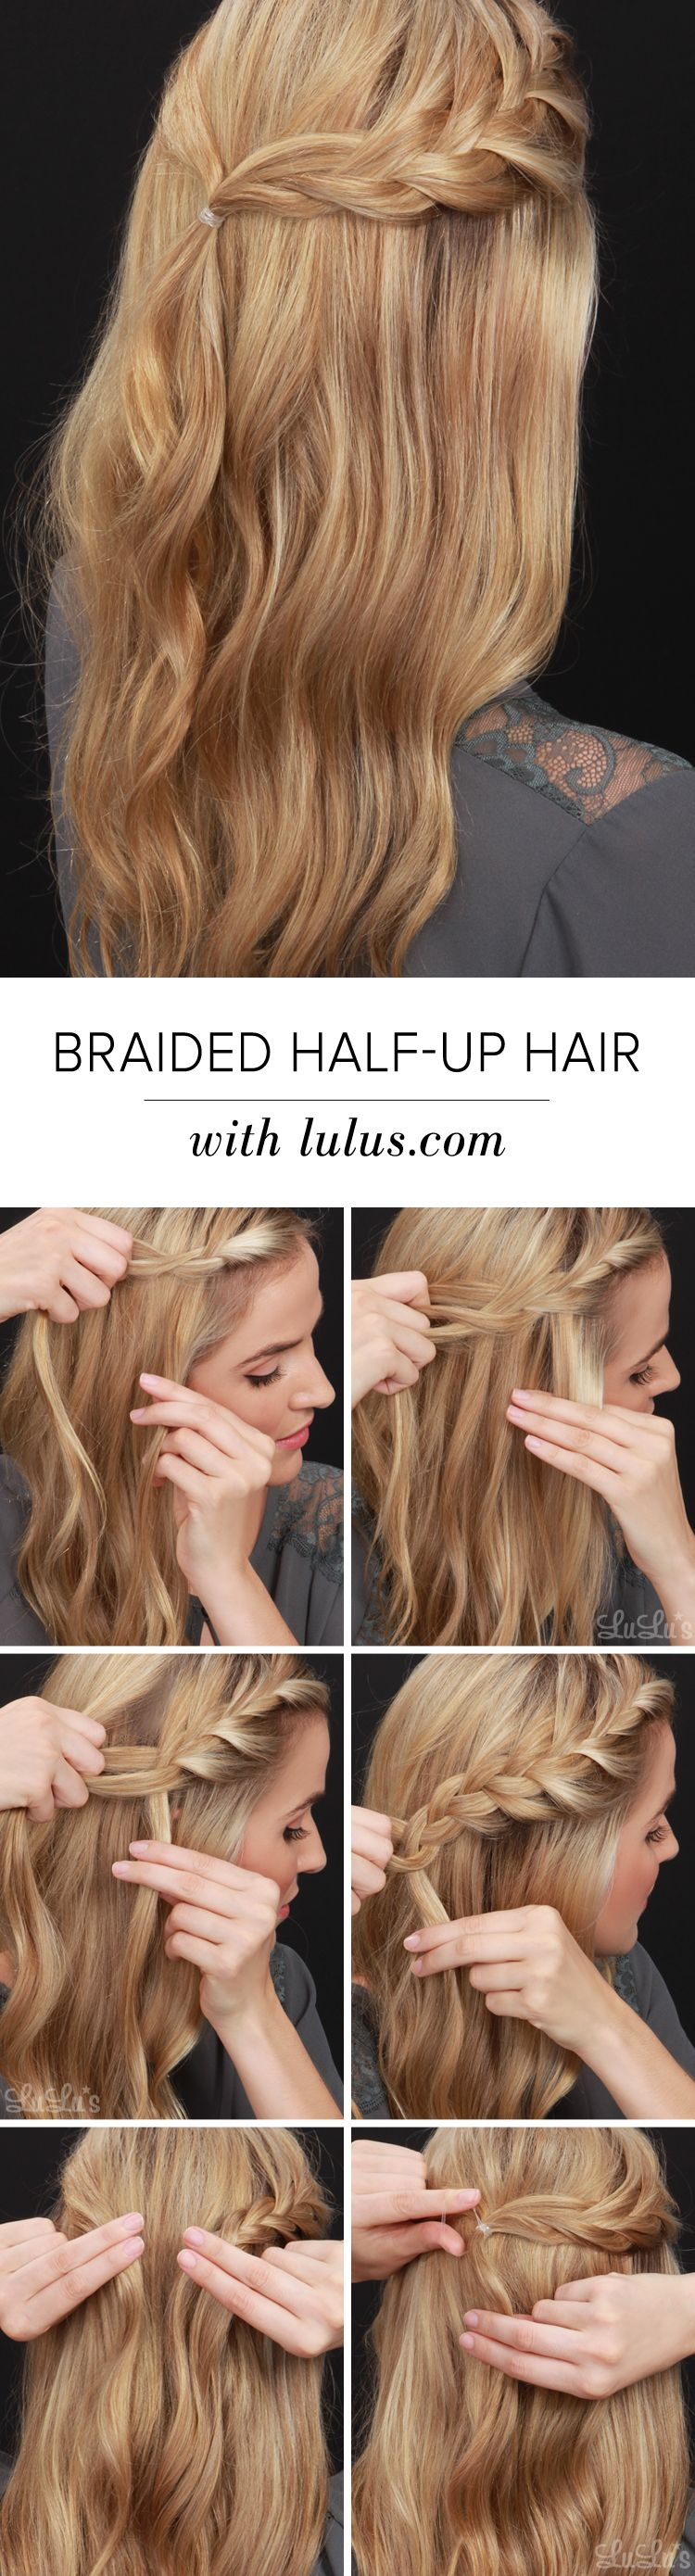 Half Up Half Down Hairstyle With Braid Tutorial Lulus Com Fashion Blog Hair Styles Long Hair Styles Half Up Hair